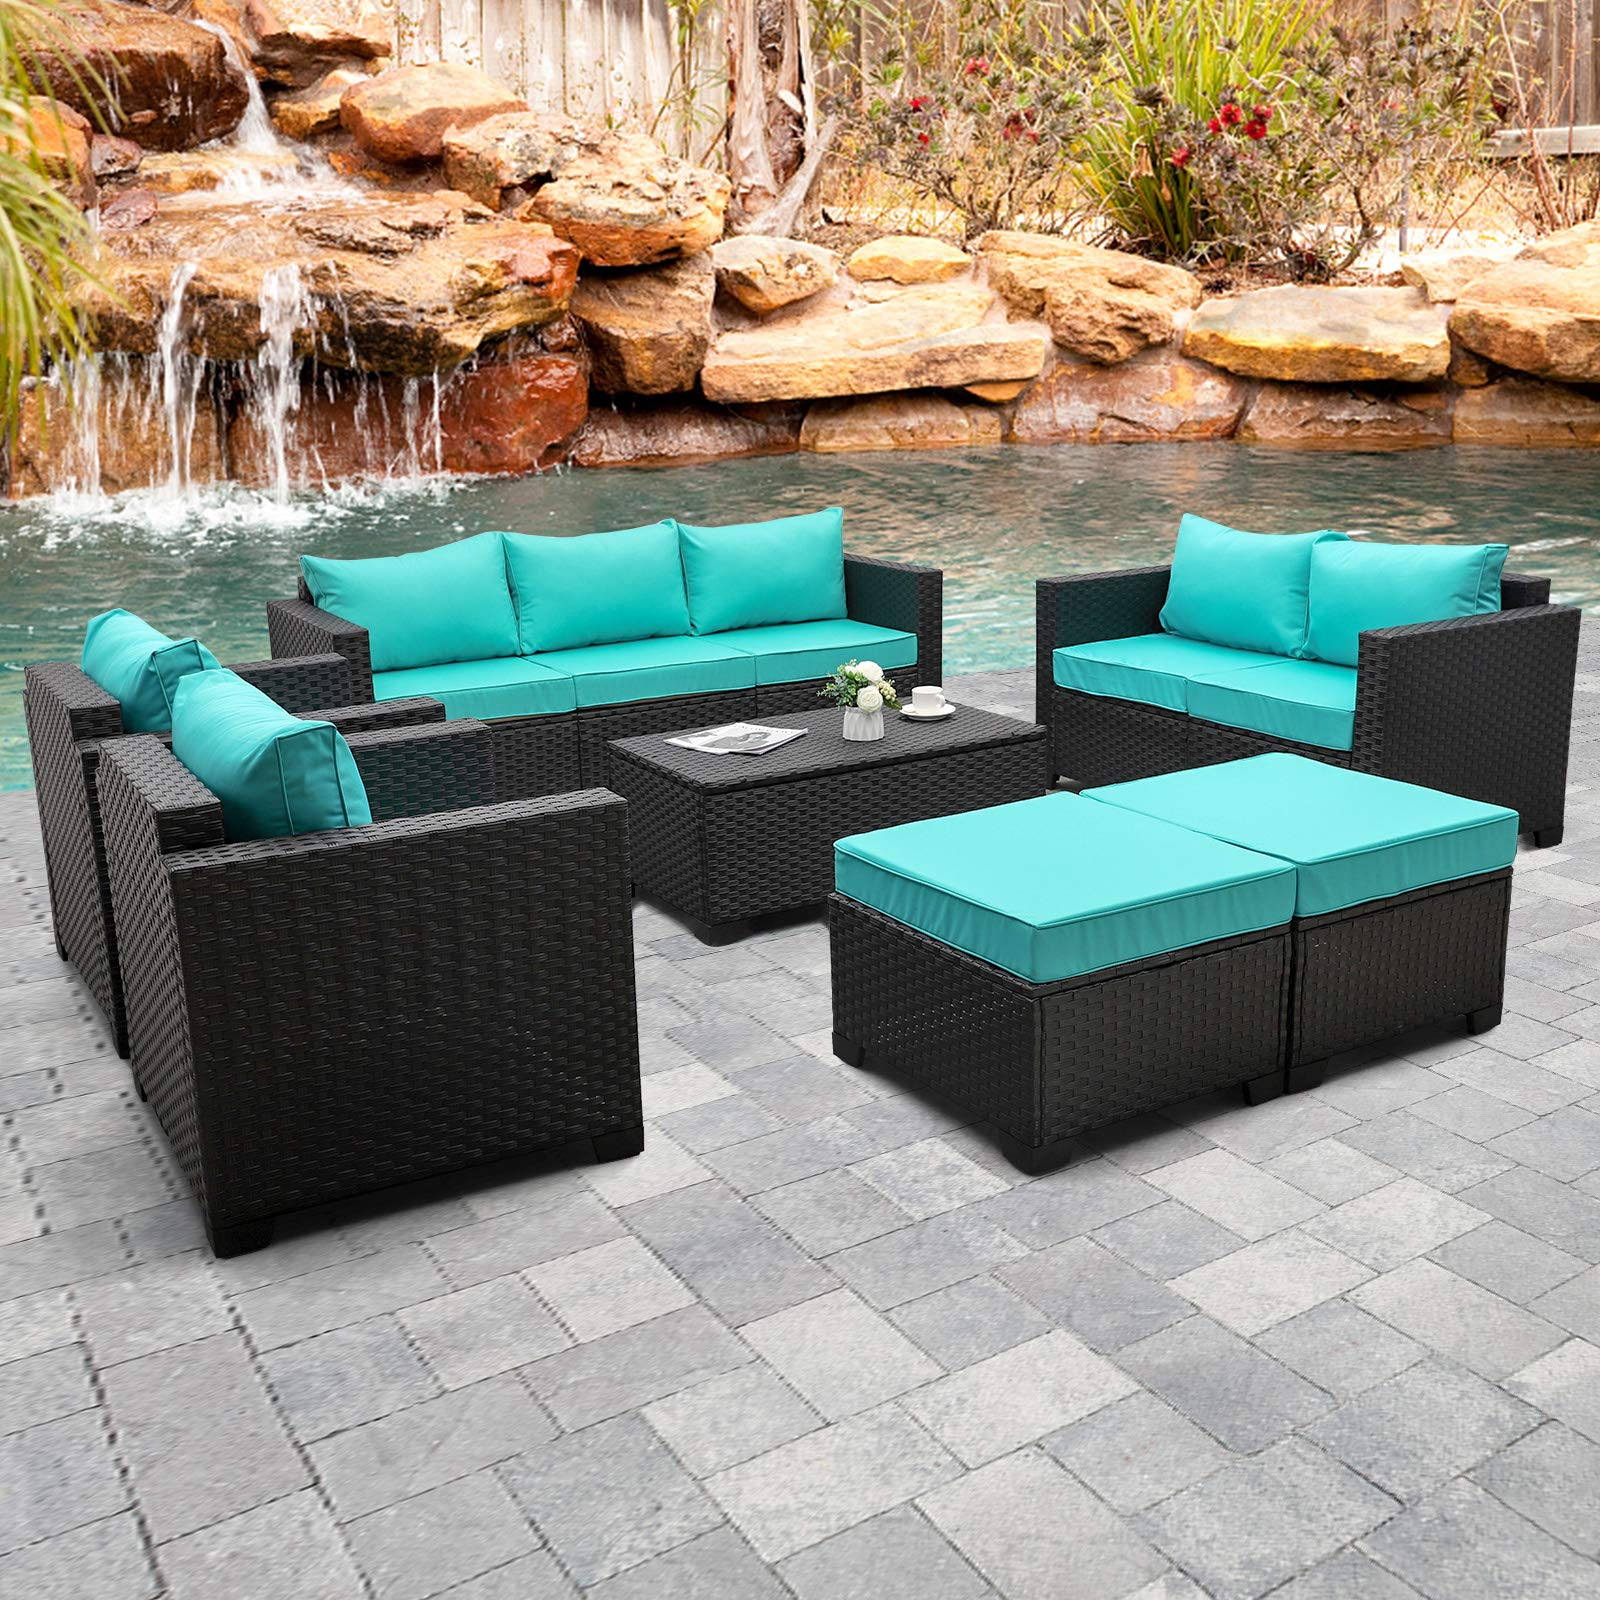 Rattaner Outdoor PE Wicker Furniture Set 7 Pieces Patio Garden Conversation Cushioned Seat Couch Sofa Chair Set with Turqu...